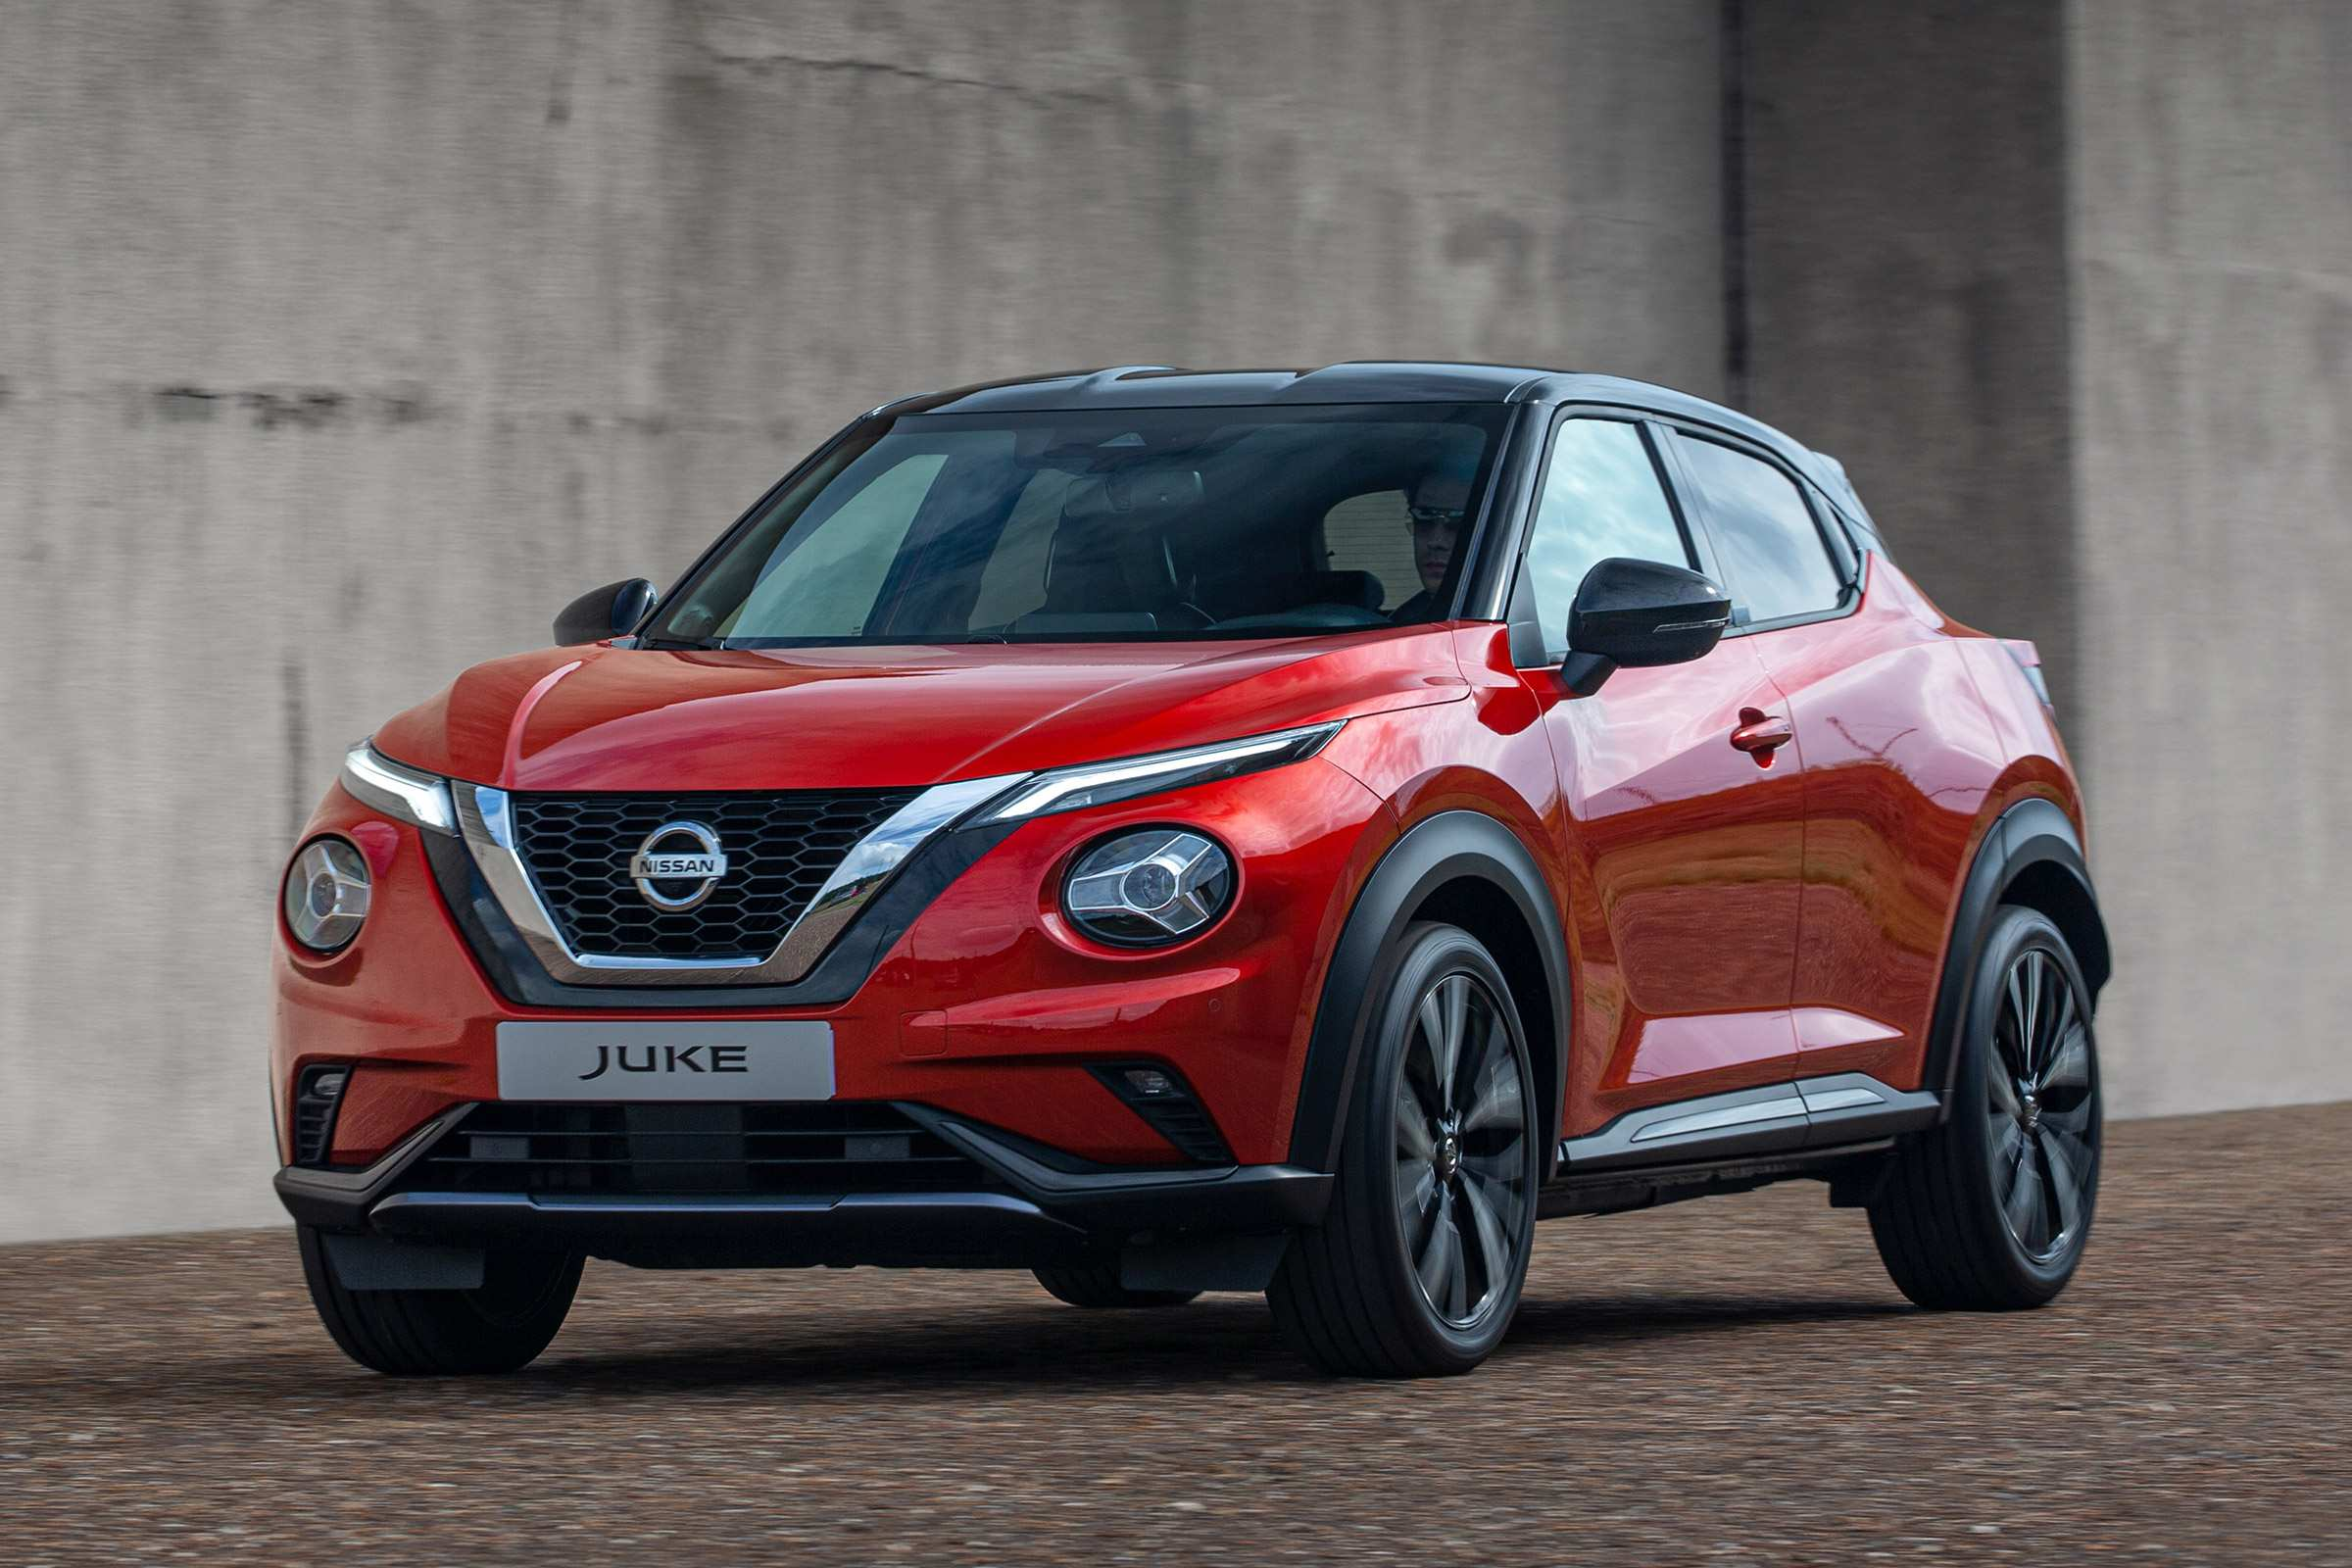 27 New When Do Nissan 2019 Models Come Out Price First Drive